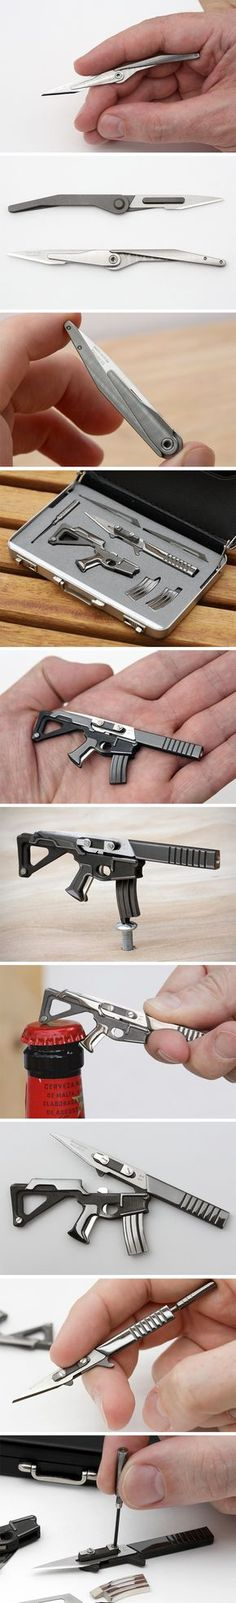 The World's Tiniest Multitool Packs a Punch! Edc Gadgets, Cool Gadgets, Cool Knives, Knives And Swords, E Mc2, Survival Tools, Edc Tools, Things To Buy, Stuff To Buy